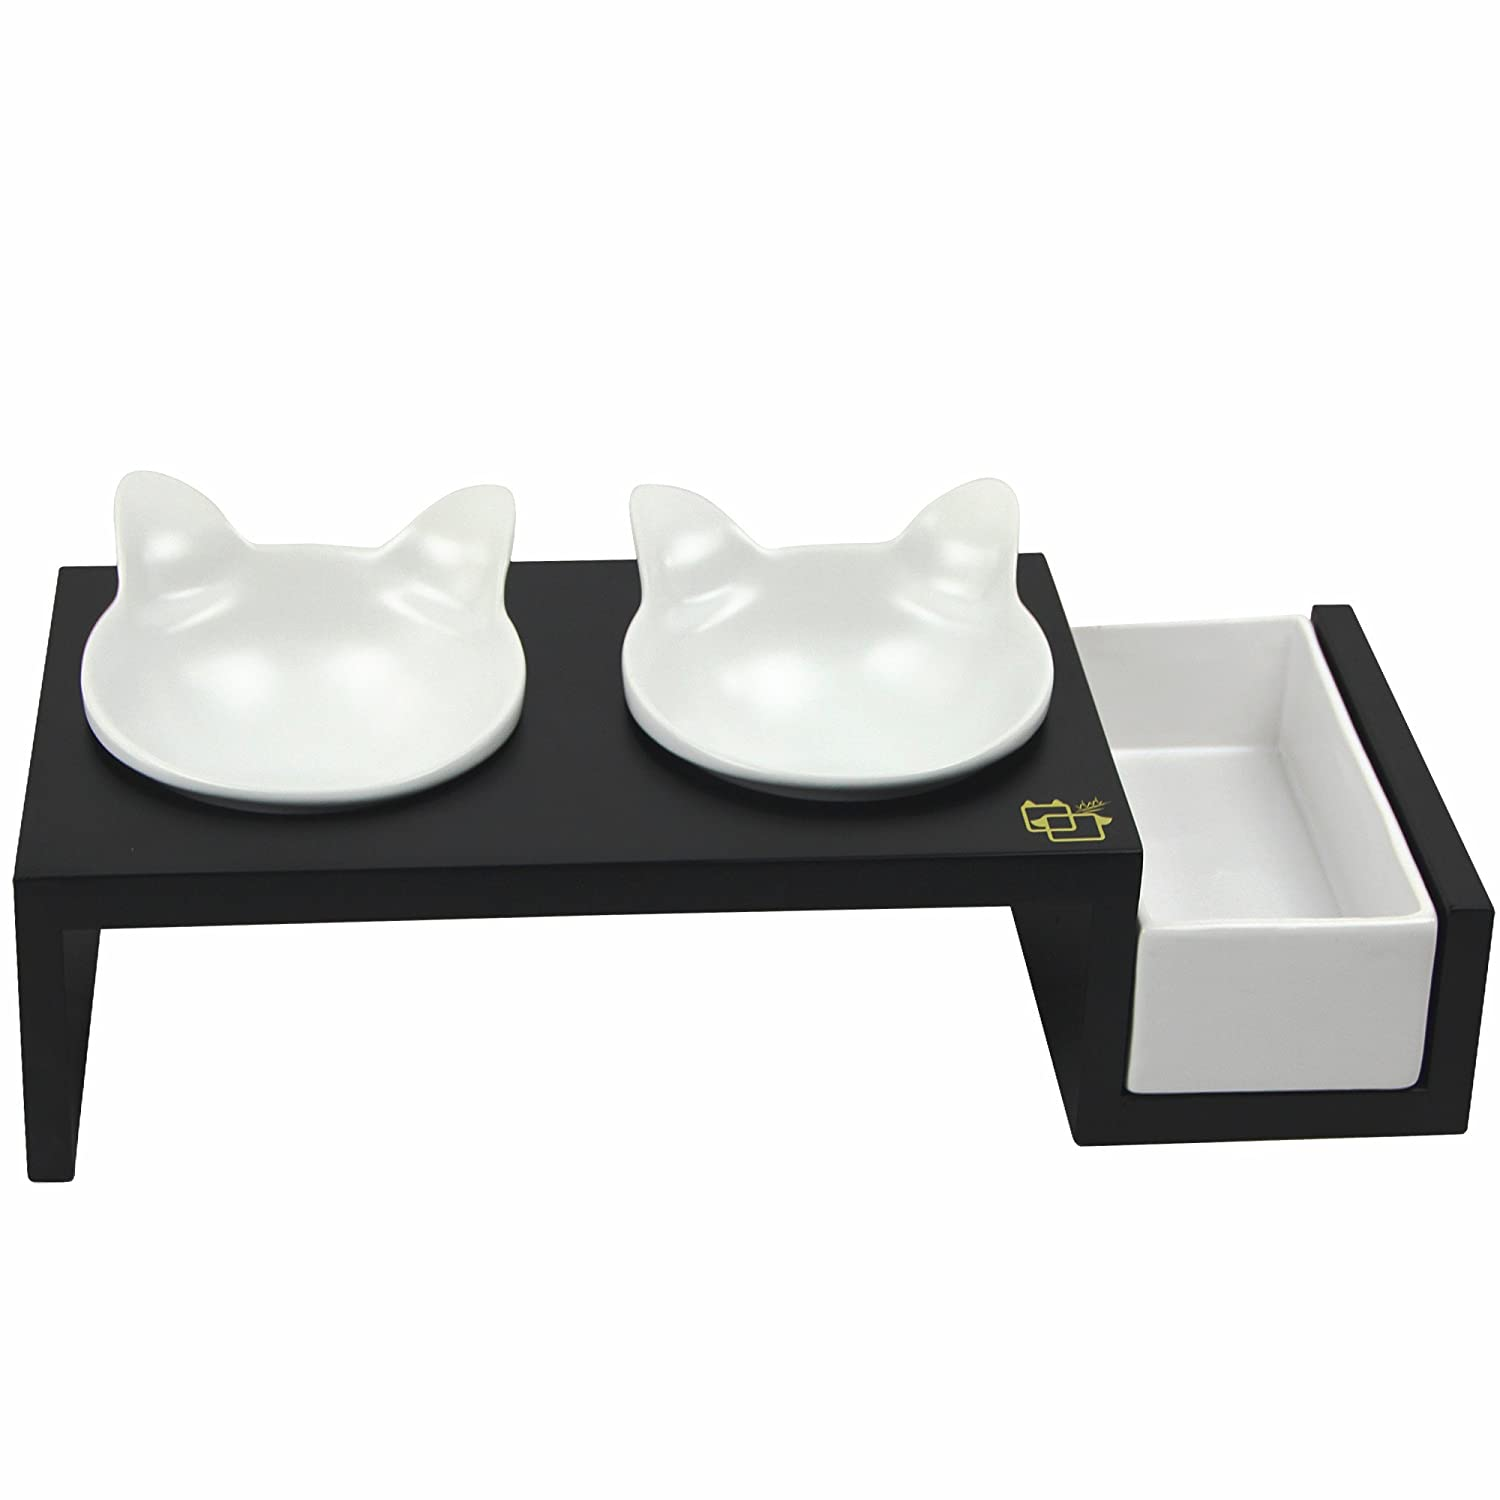 ❤_Kitten Feeder_❤ Solid Wood Elevated Stand & Ceramic Hand Craft Bowls by ViviPet - Aoshima